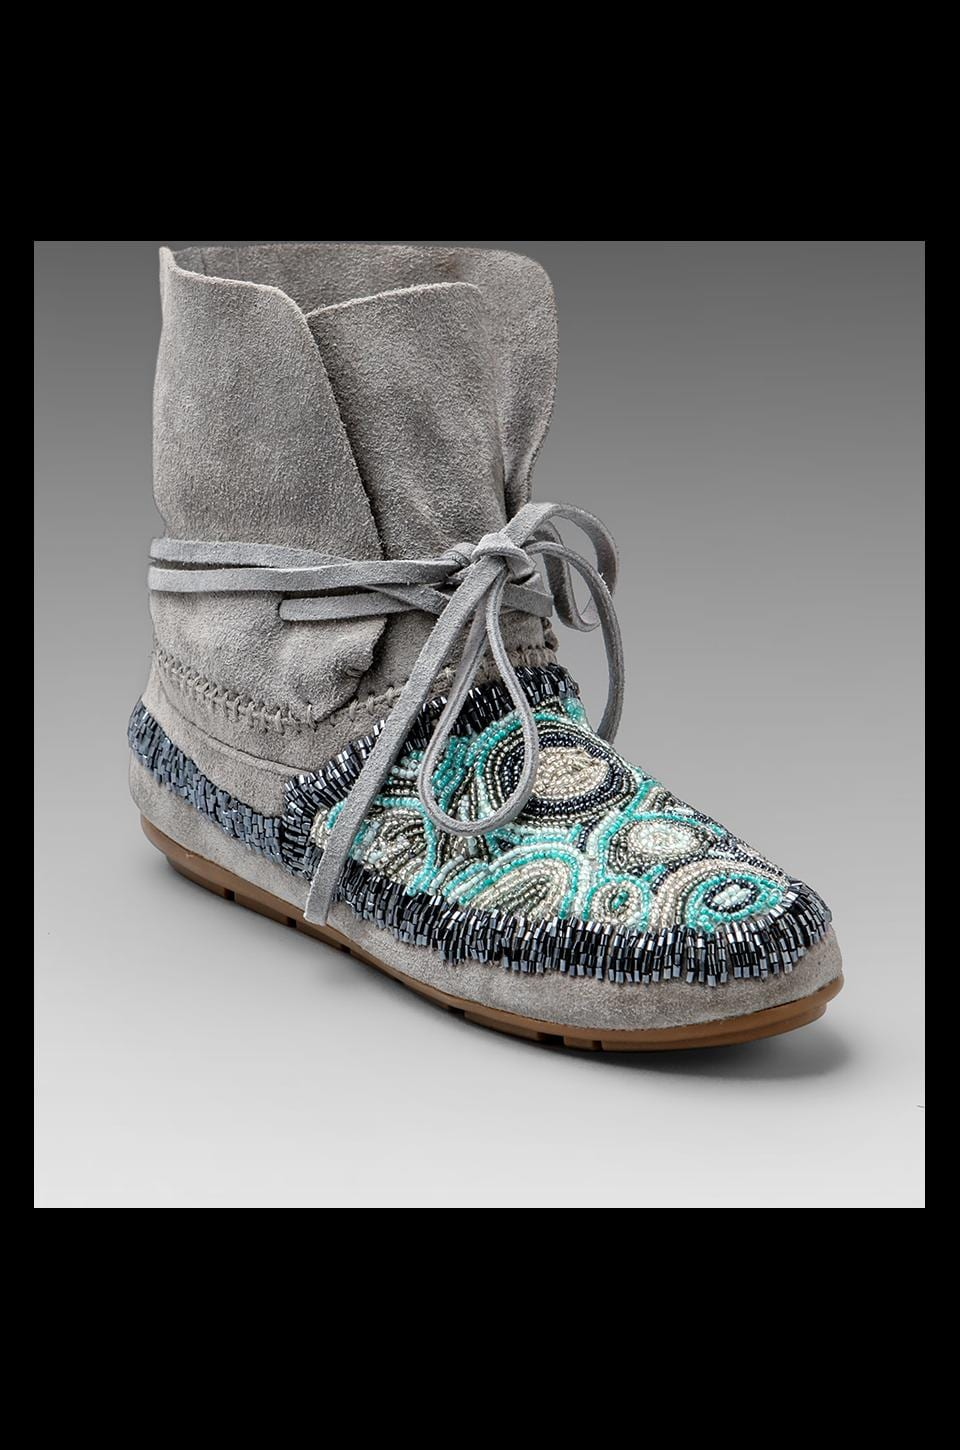 House of Harlow 1960 House of Harlow Mallory Moccasin in Dove Grey